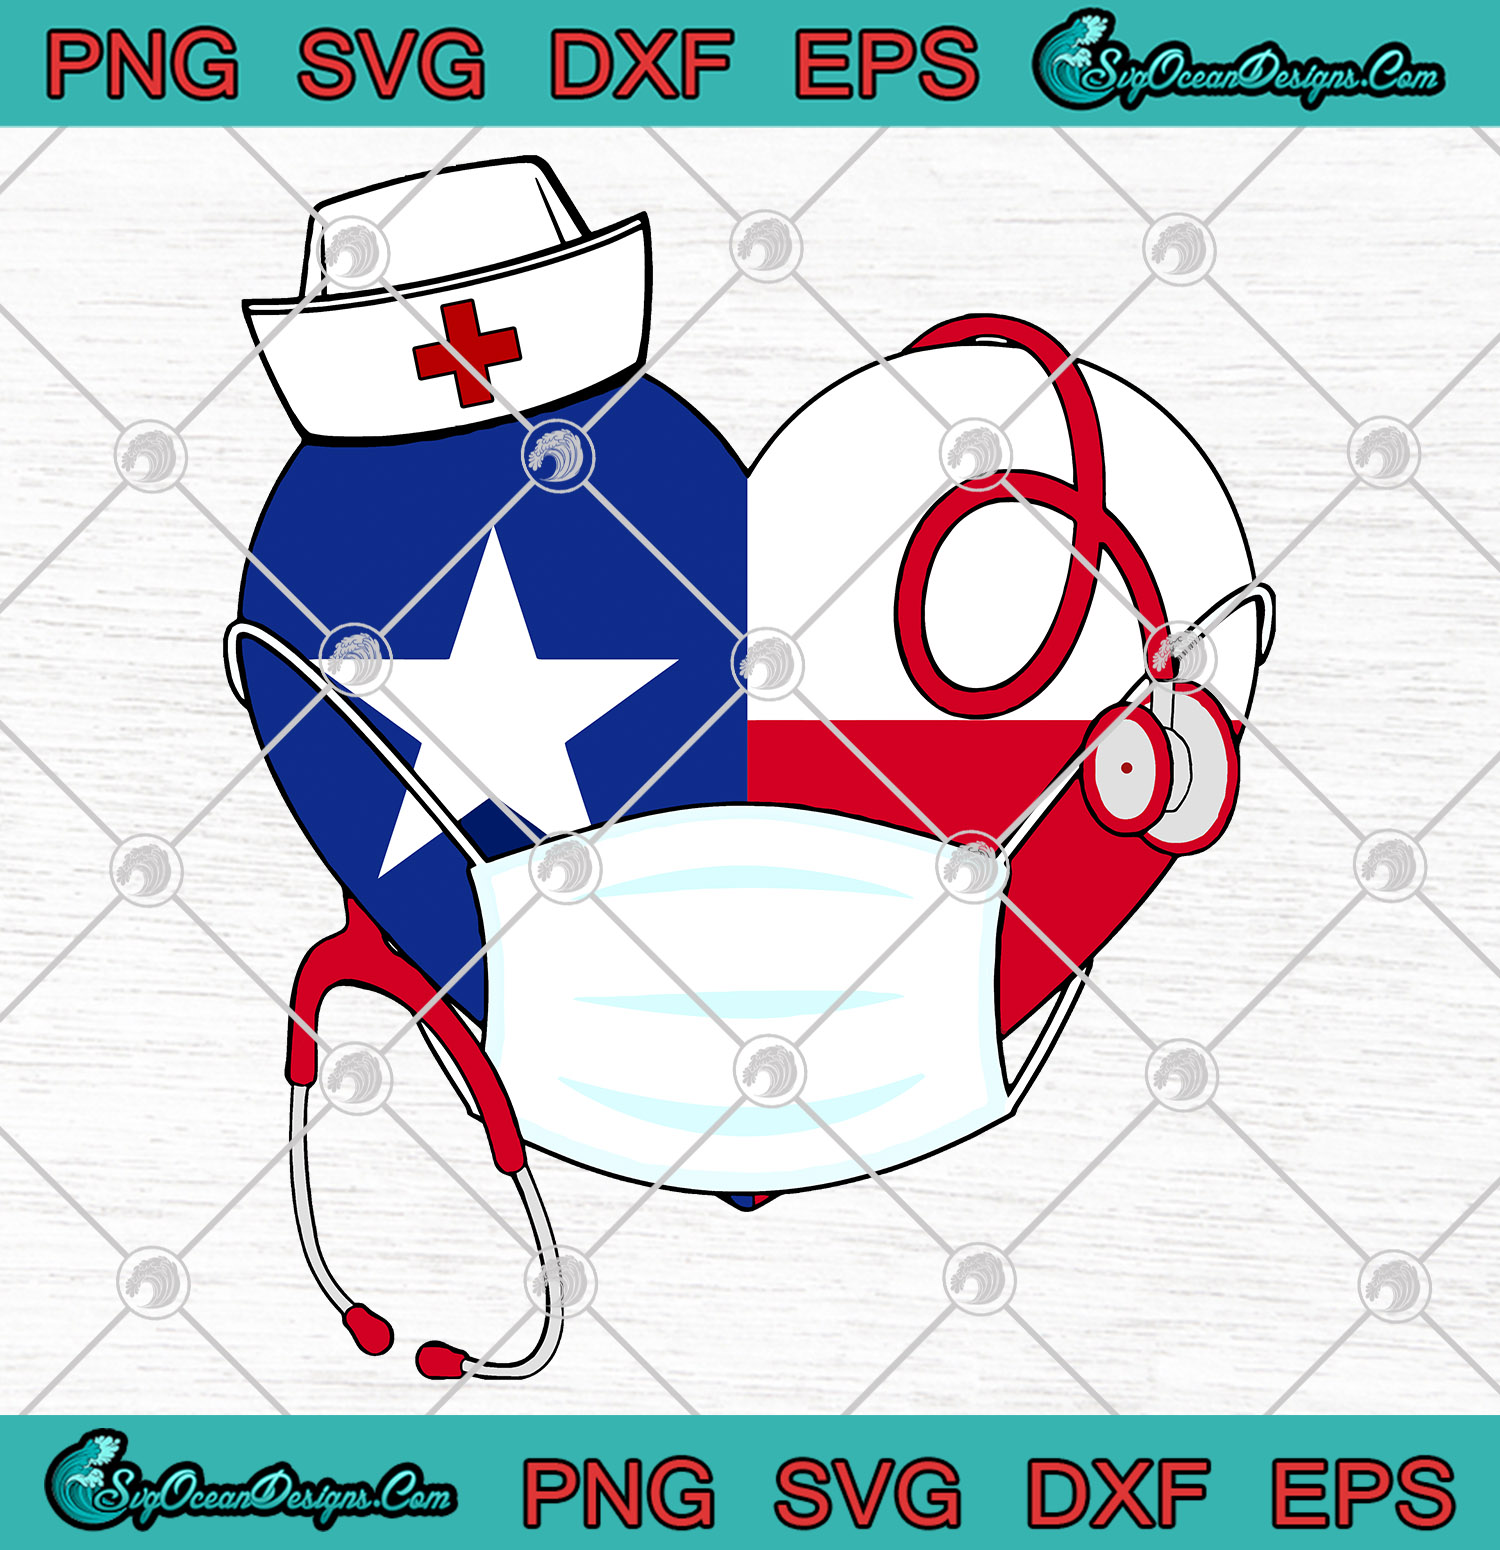 Heart Texas Stethoscope Nurse Face Mask Svg Png Texas Strong Cutting File Cricut Silhouette Art Designs Digital Download